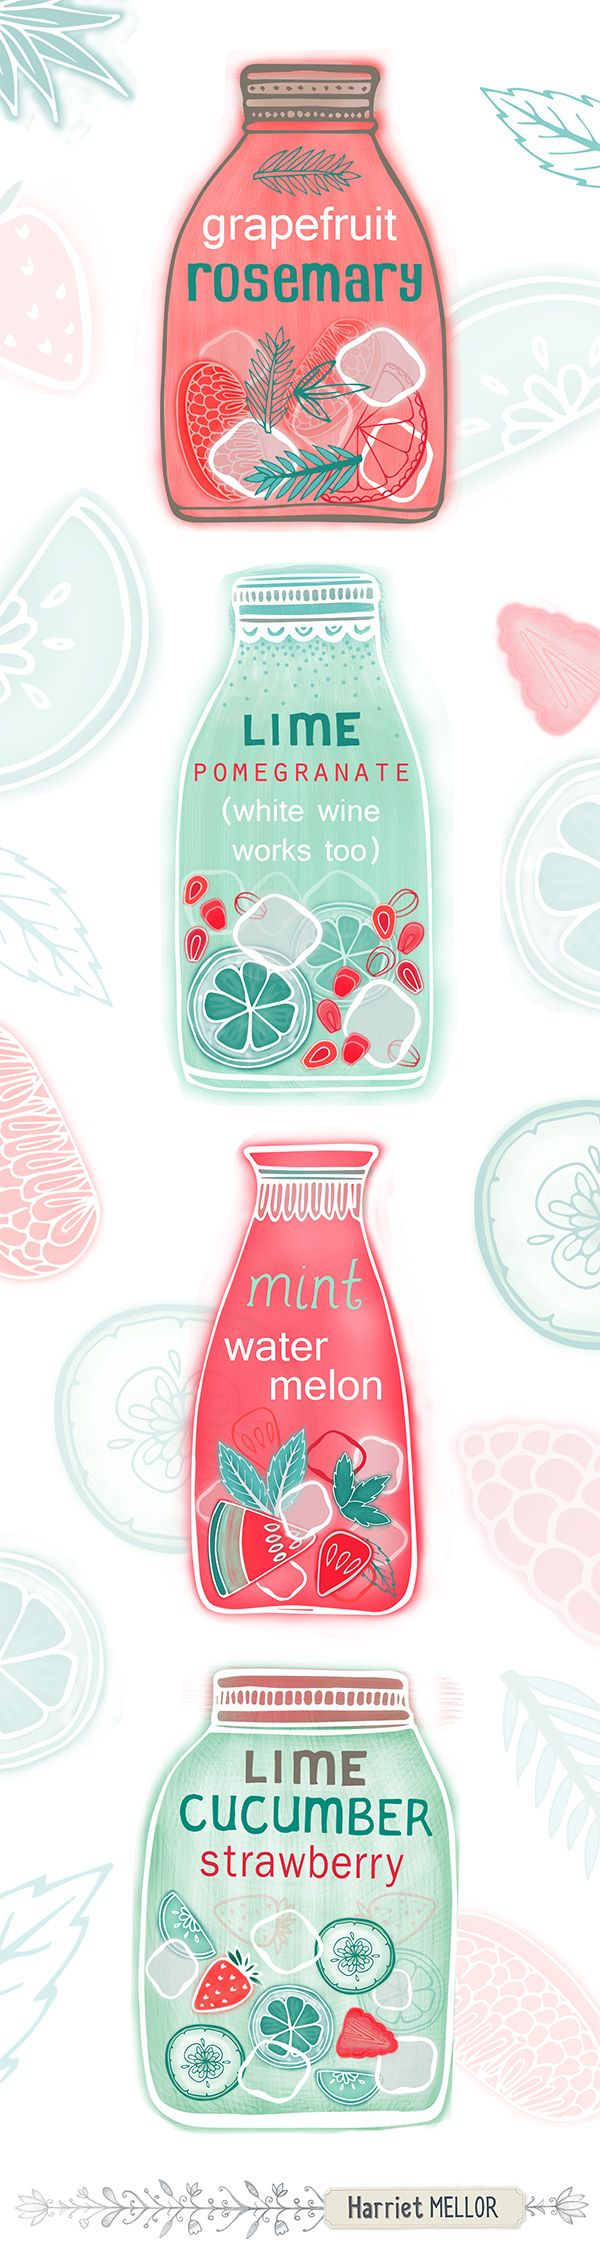 Harriet Mellor Infused waters tall pin